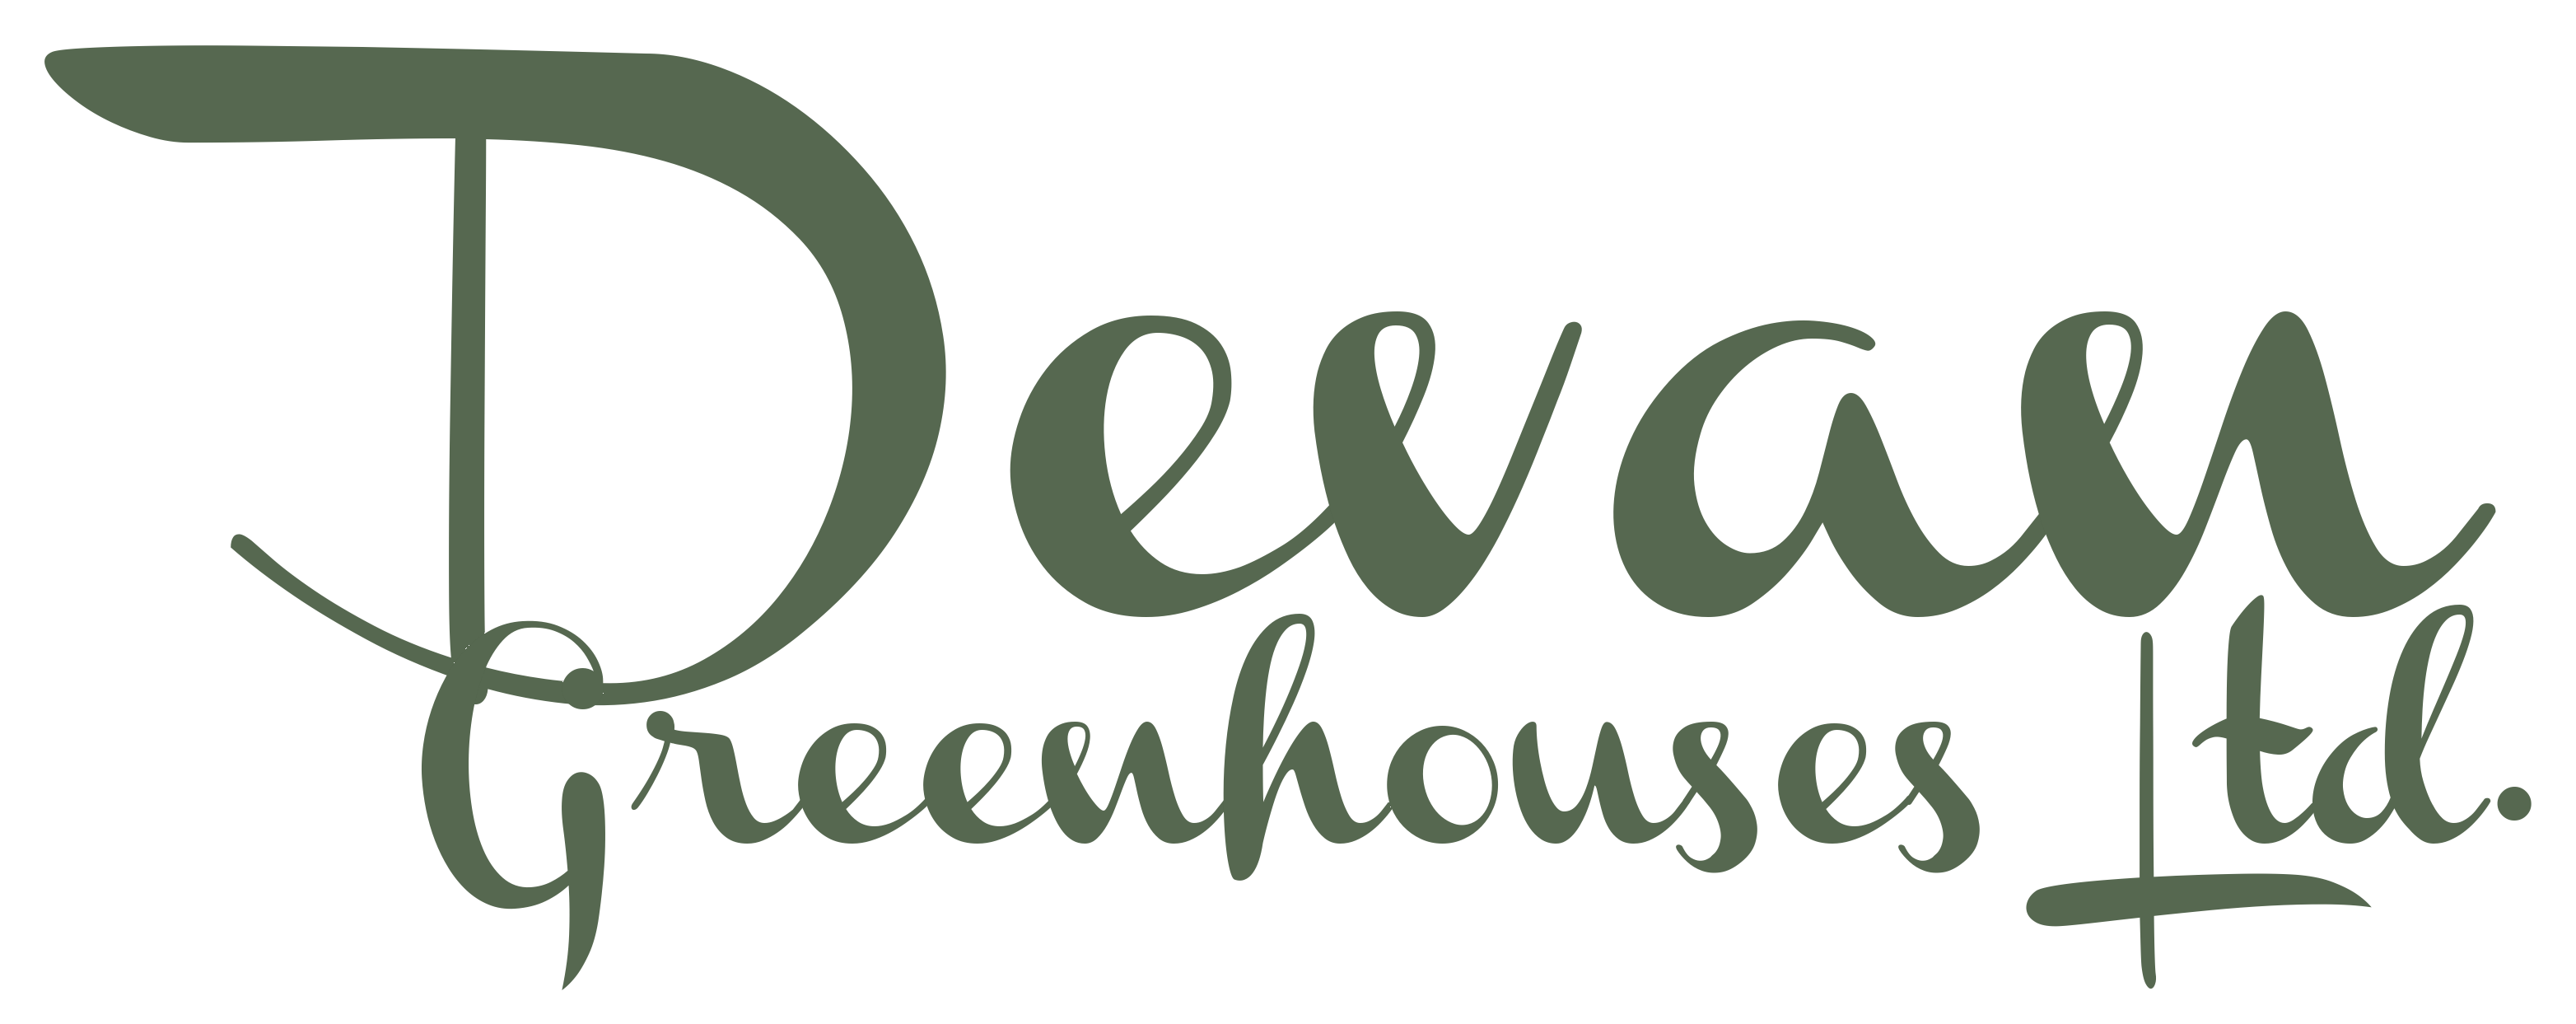 Devan Greenhouses Ltd.